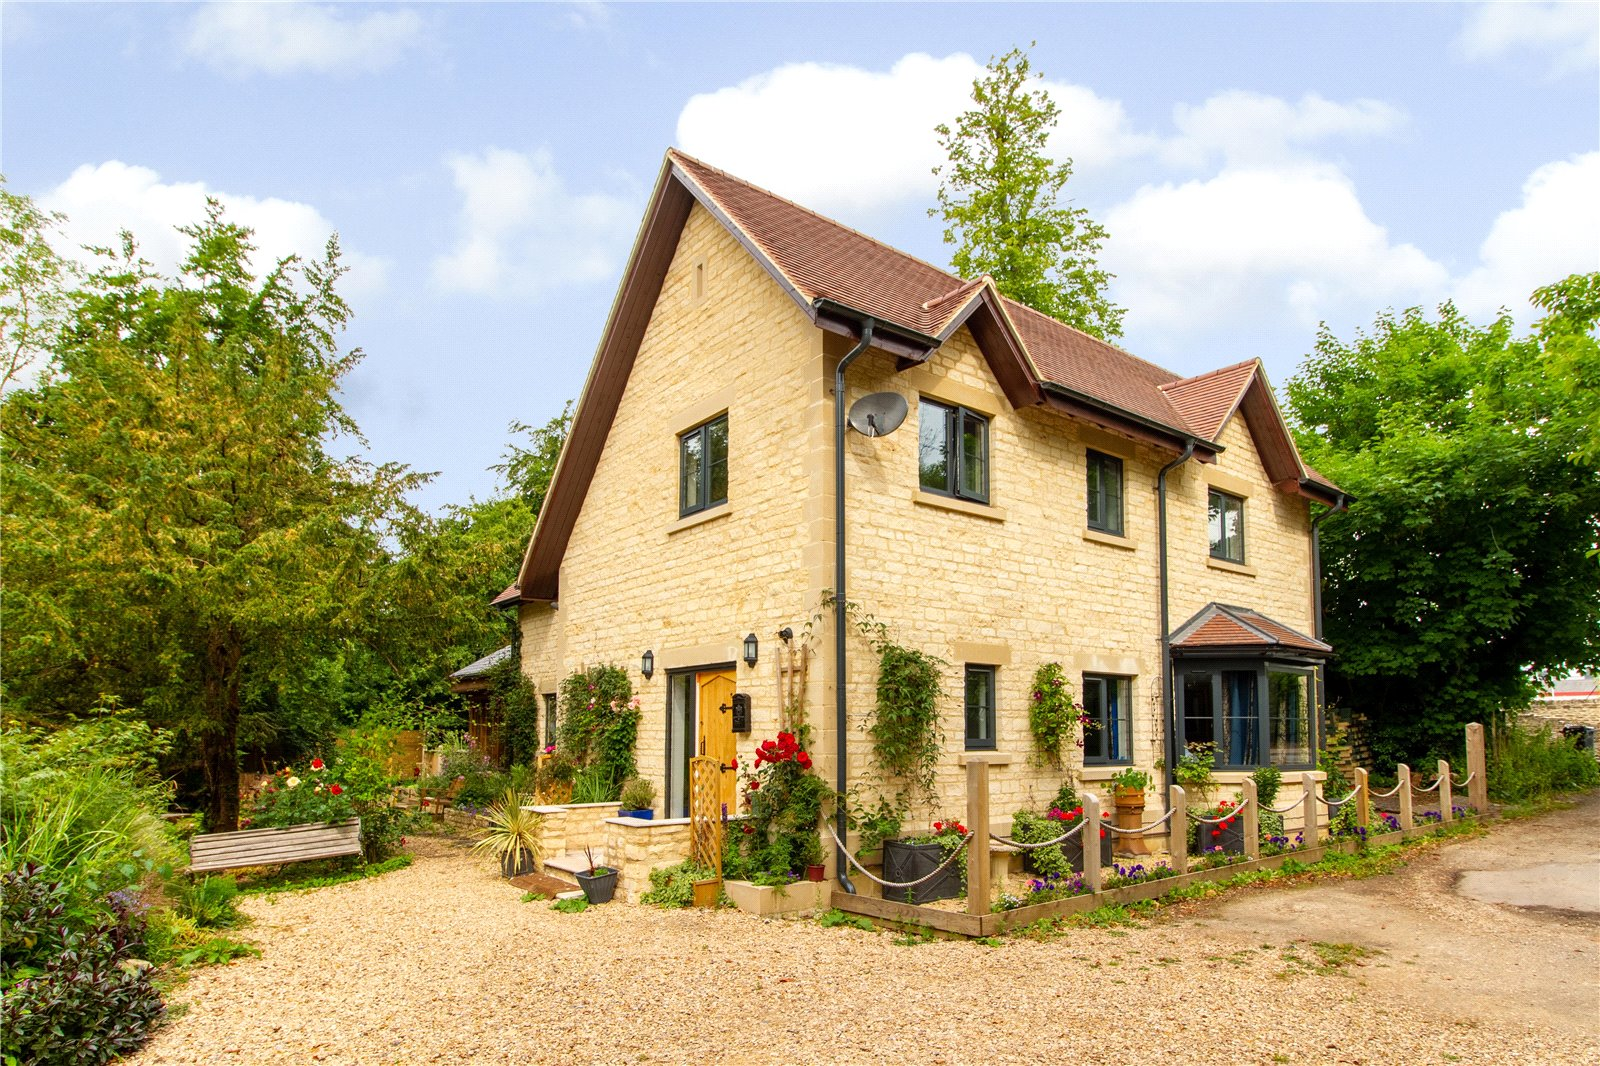 Bartonbury Glen, Stroud Road, Cirencester GL7